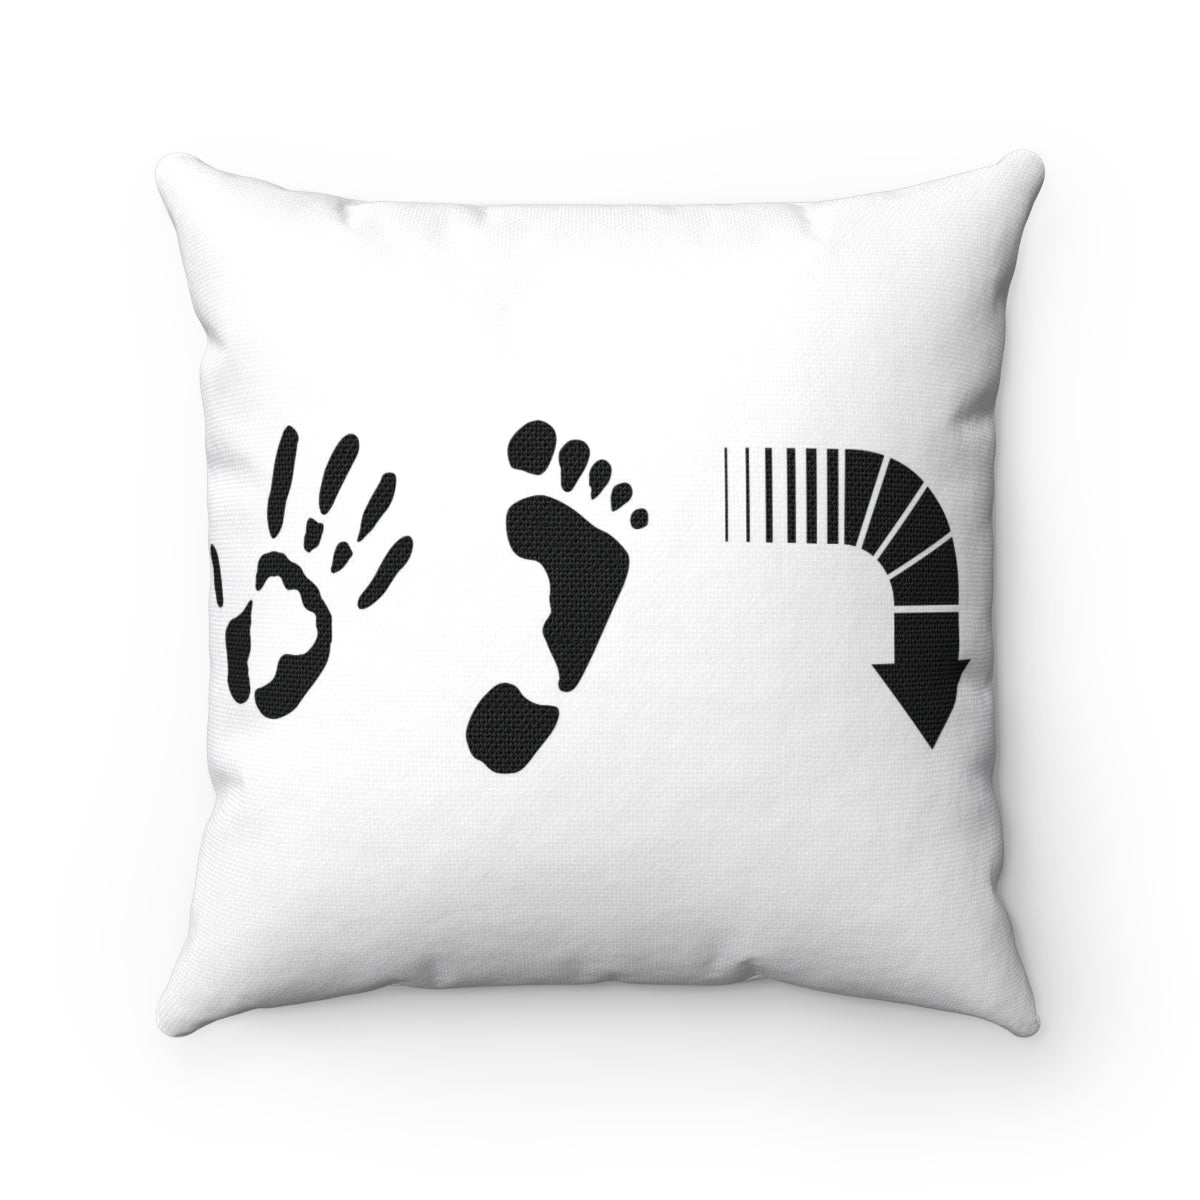 Five Toes Down Spun Polyester Square Pillow